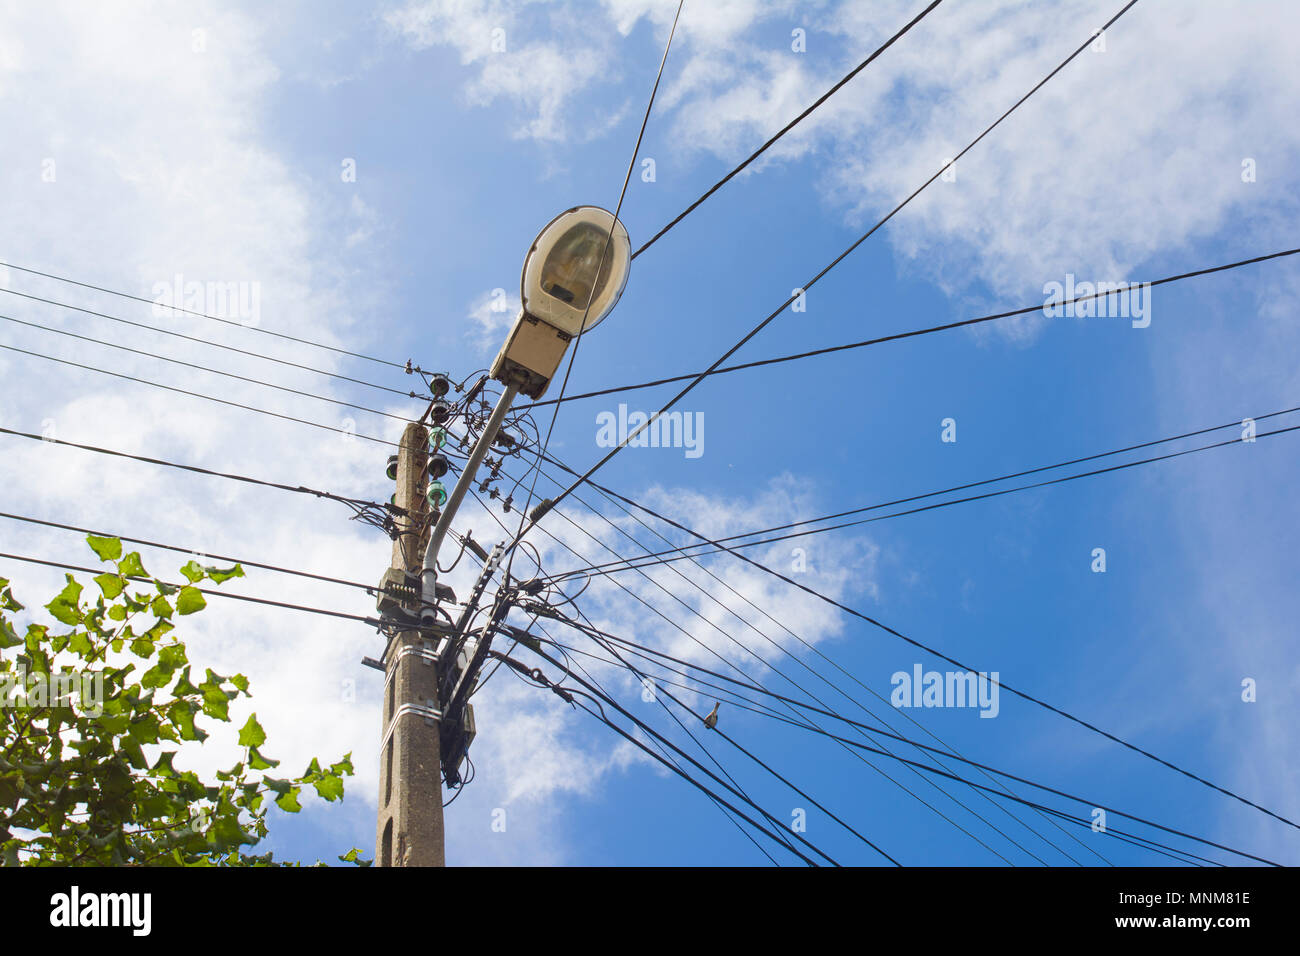 Electric cable and wires on electric pole Electricity Stock Photo ...